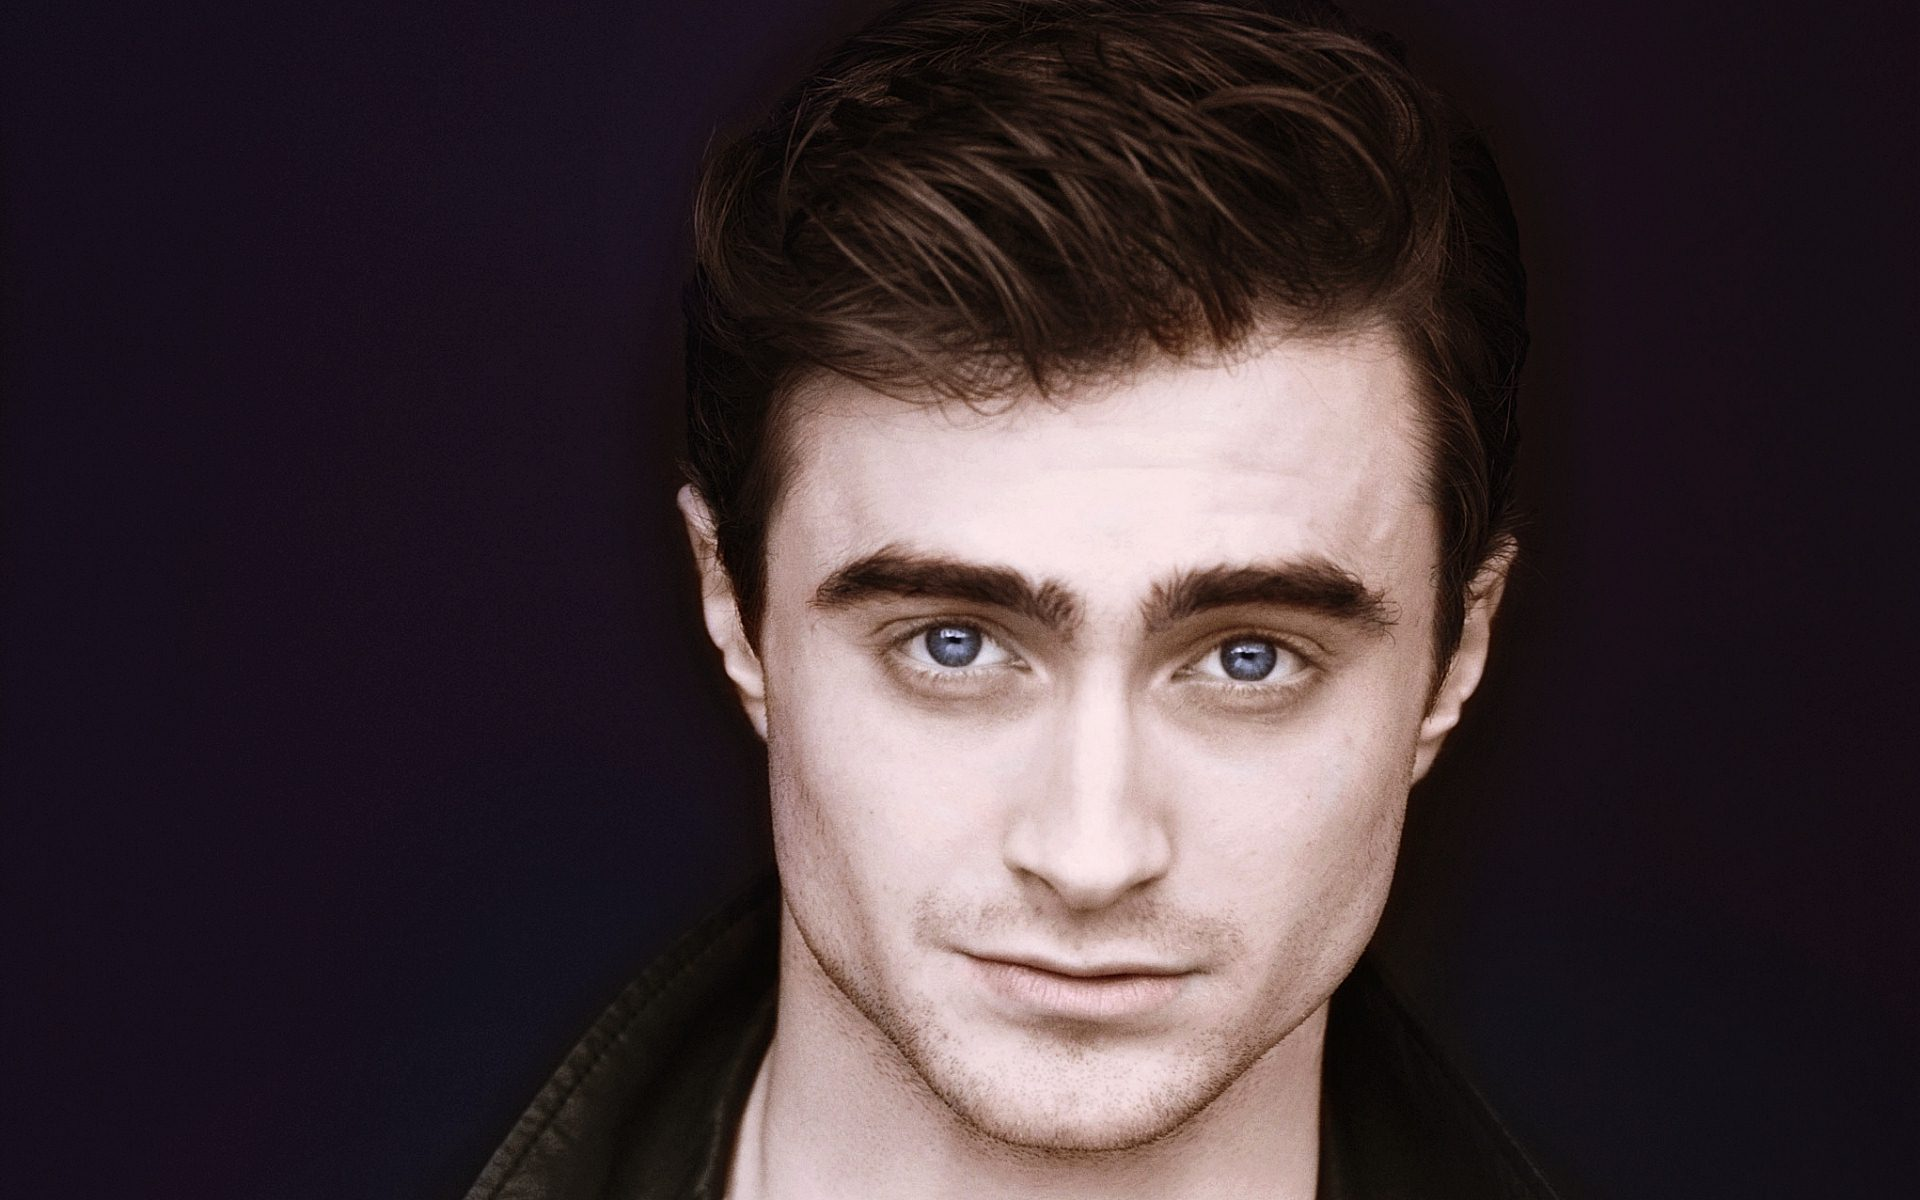 Discussion on this topic: David Prowse (born 1935), daniel-radcliffe-born-1989/